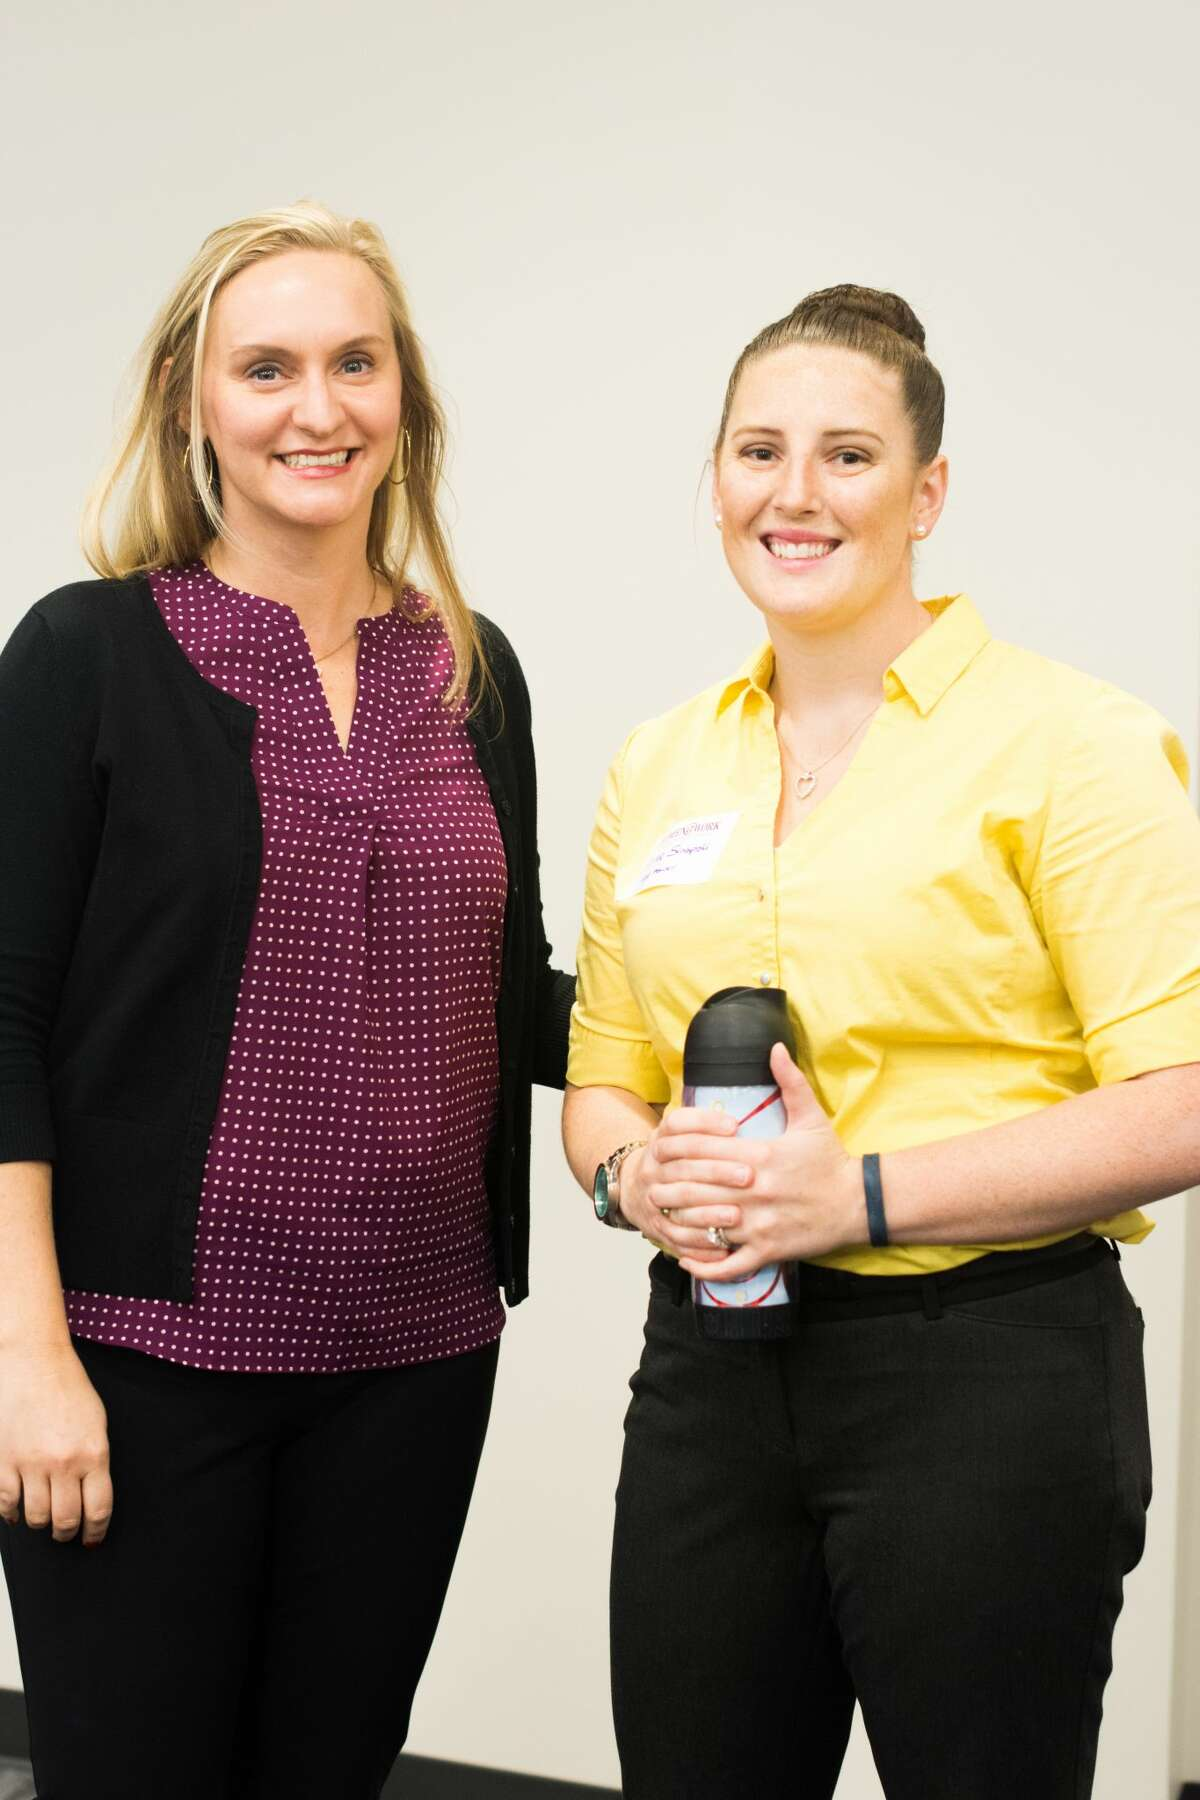 Were you SEEN at the Women@Work breakfast event with Janeen Uzzell, Head of Women Technology at GE, at the Times Union in Albany on Wednesday, July 12, 2017?Click here to join the Women@Work business network.